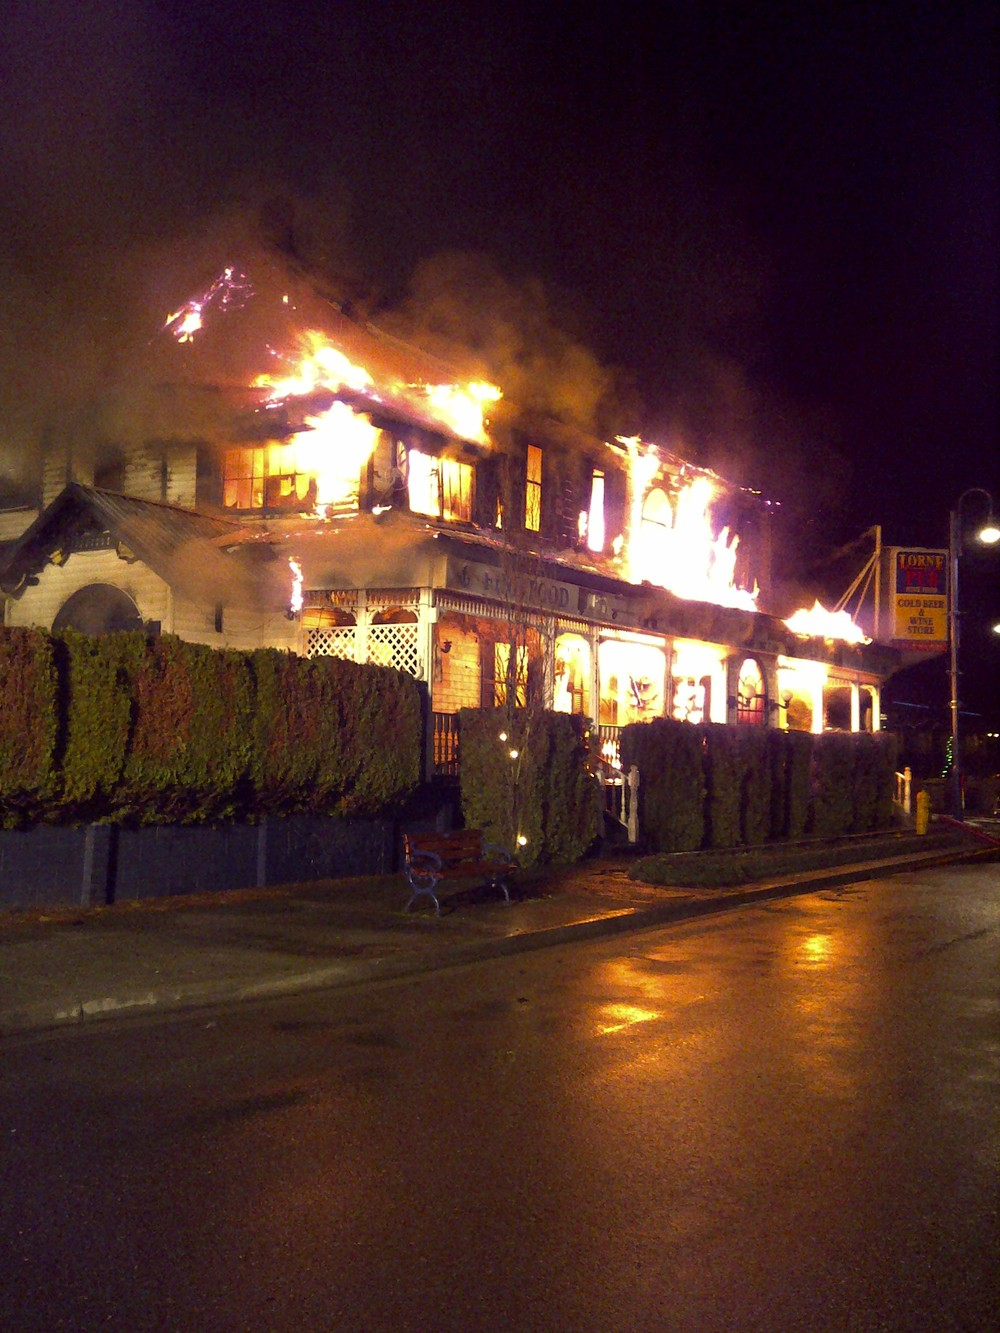 The Lorne Hotel Fire